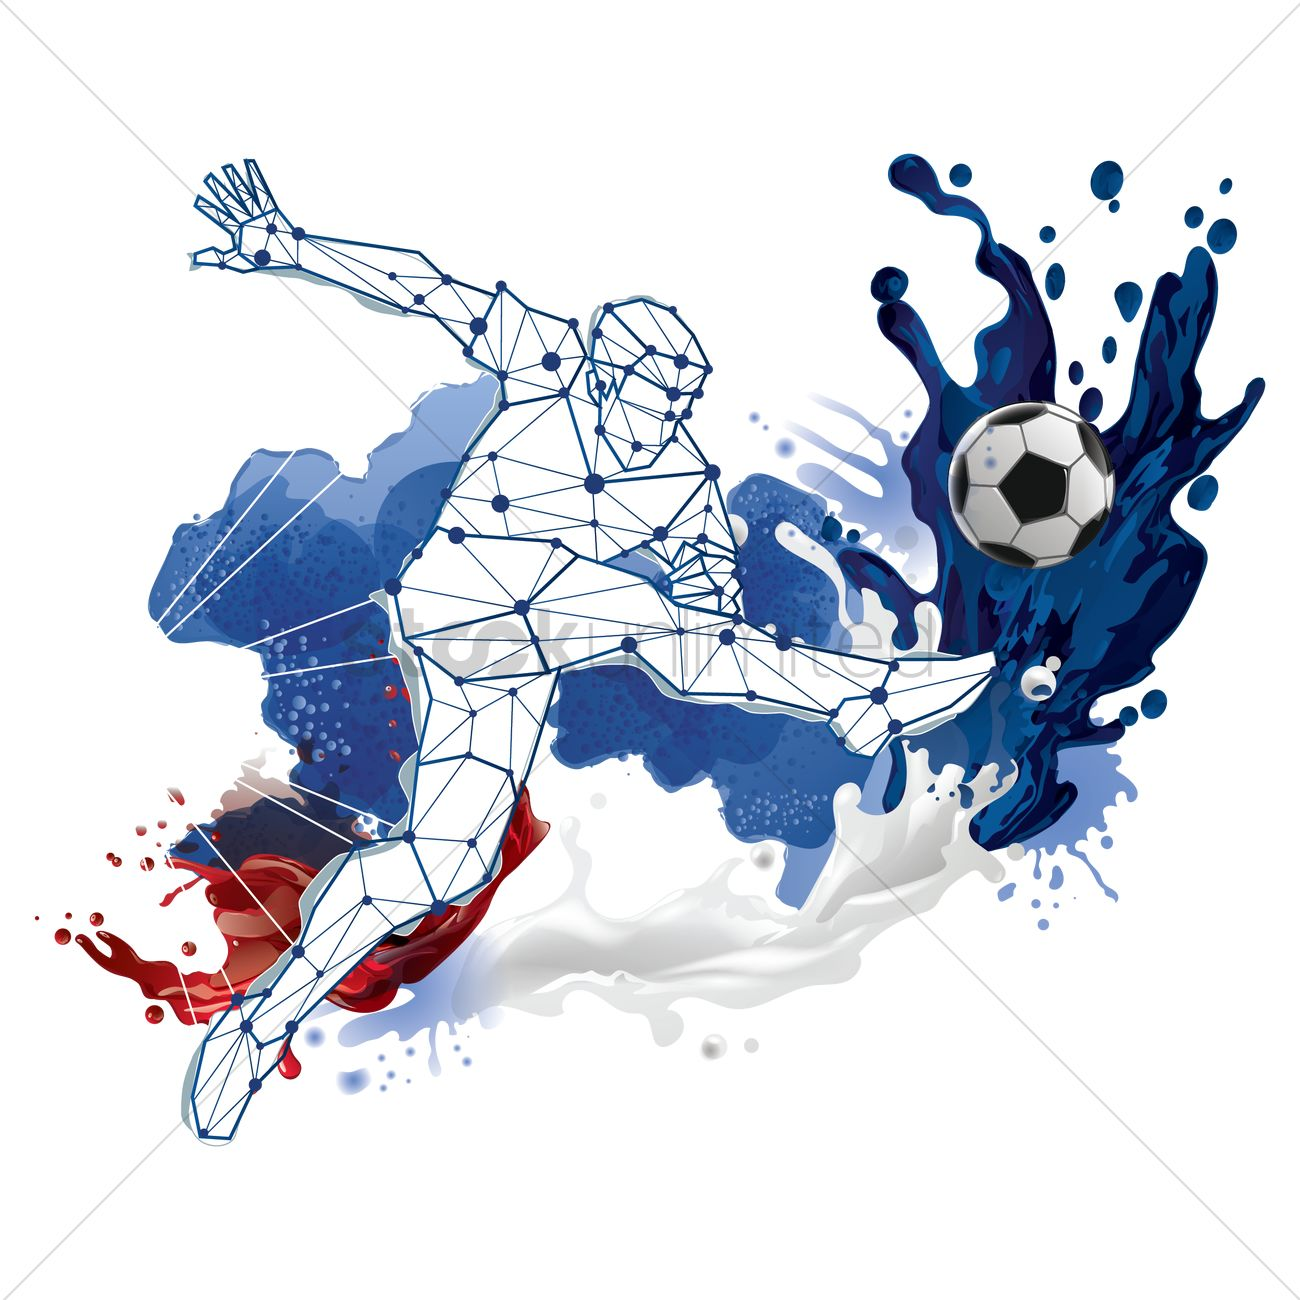 3d Liquid Abstract Wallpaper Abstract Soccer Player Design Vector Image 1818055